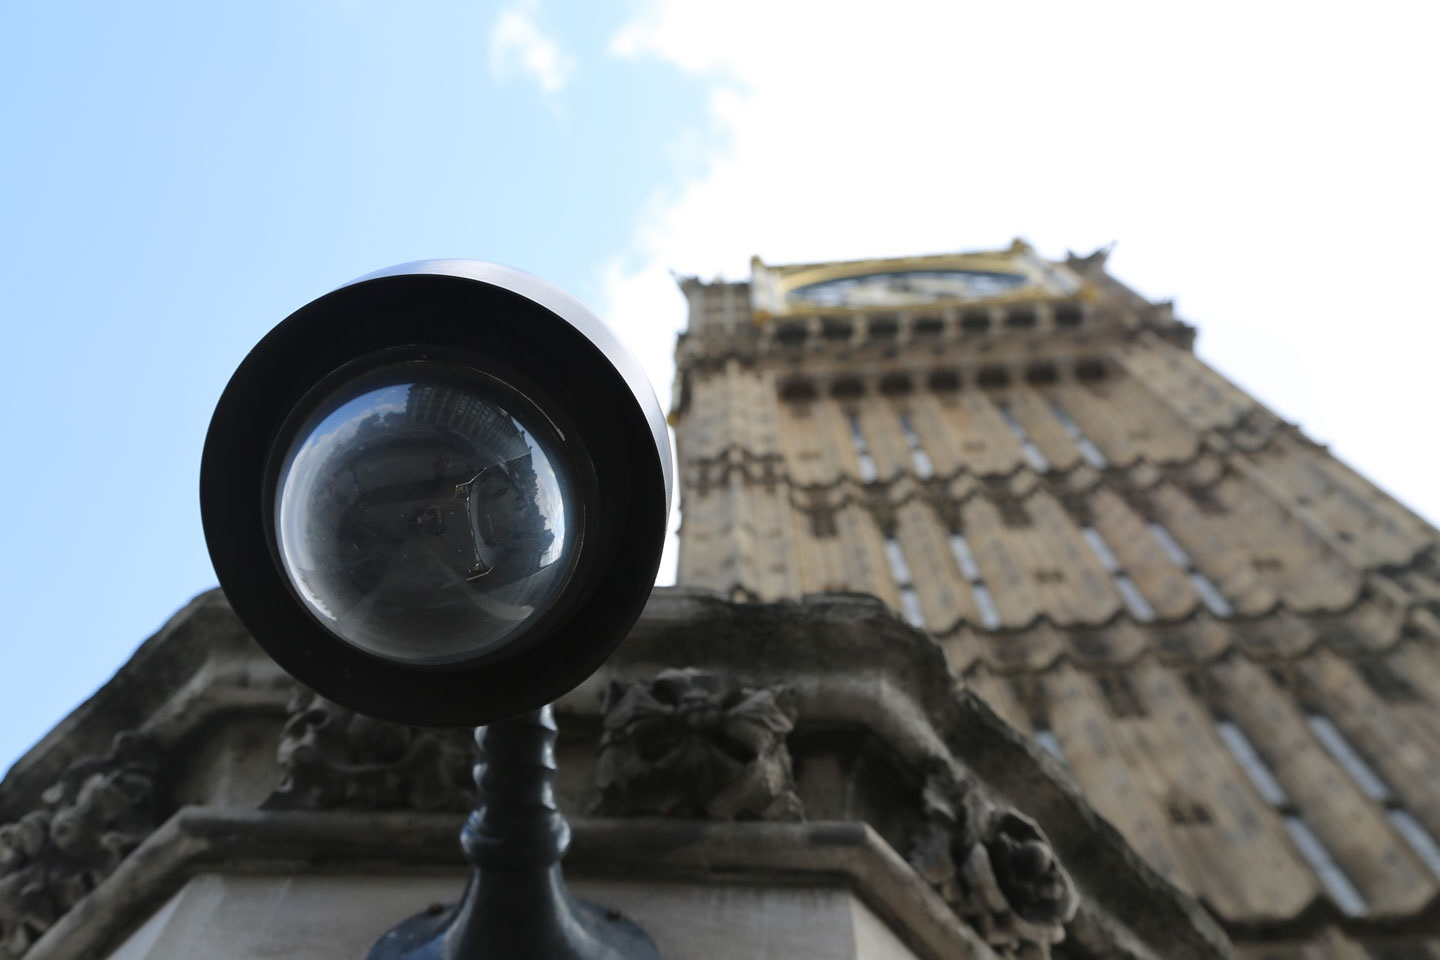 Big Ben is Watching You...(Photo Credit: Securitynewsdesk.com)